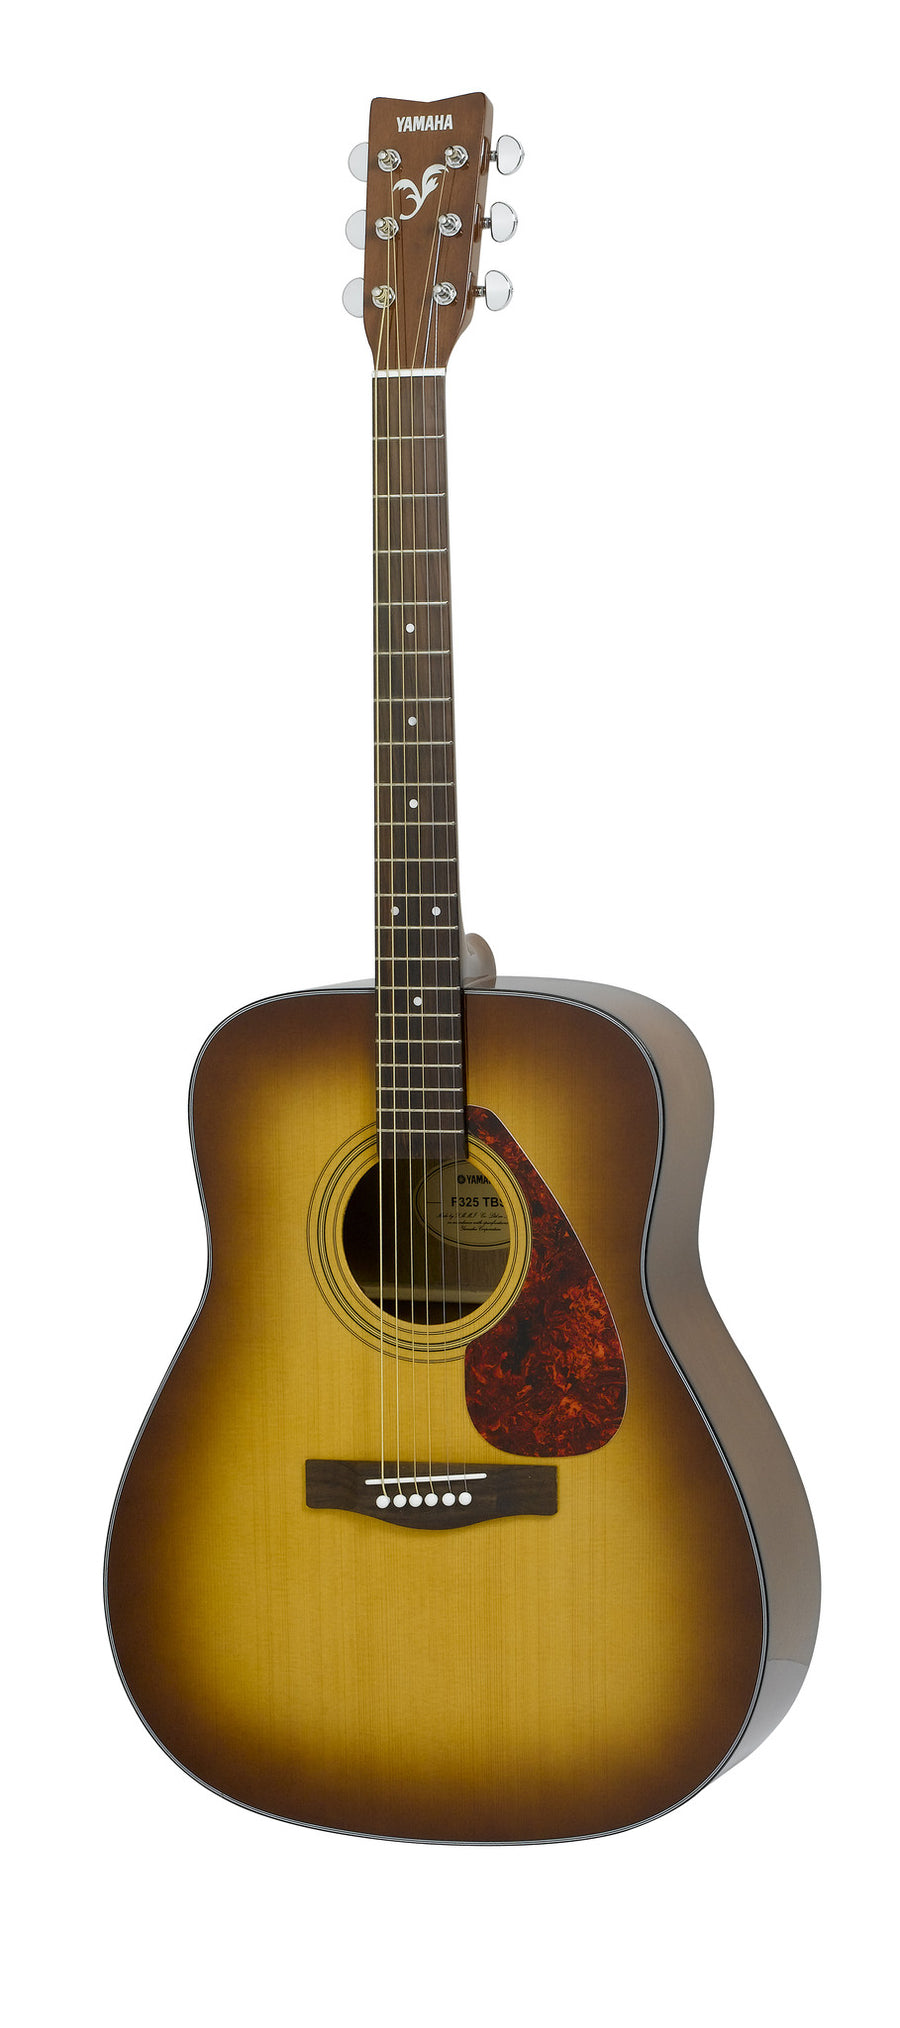 Yamaha F325DTBS Dreadnought Acoustic Guitar Bundle